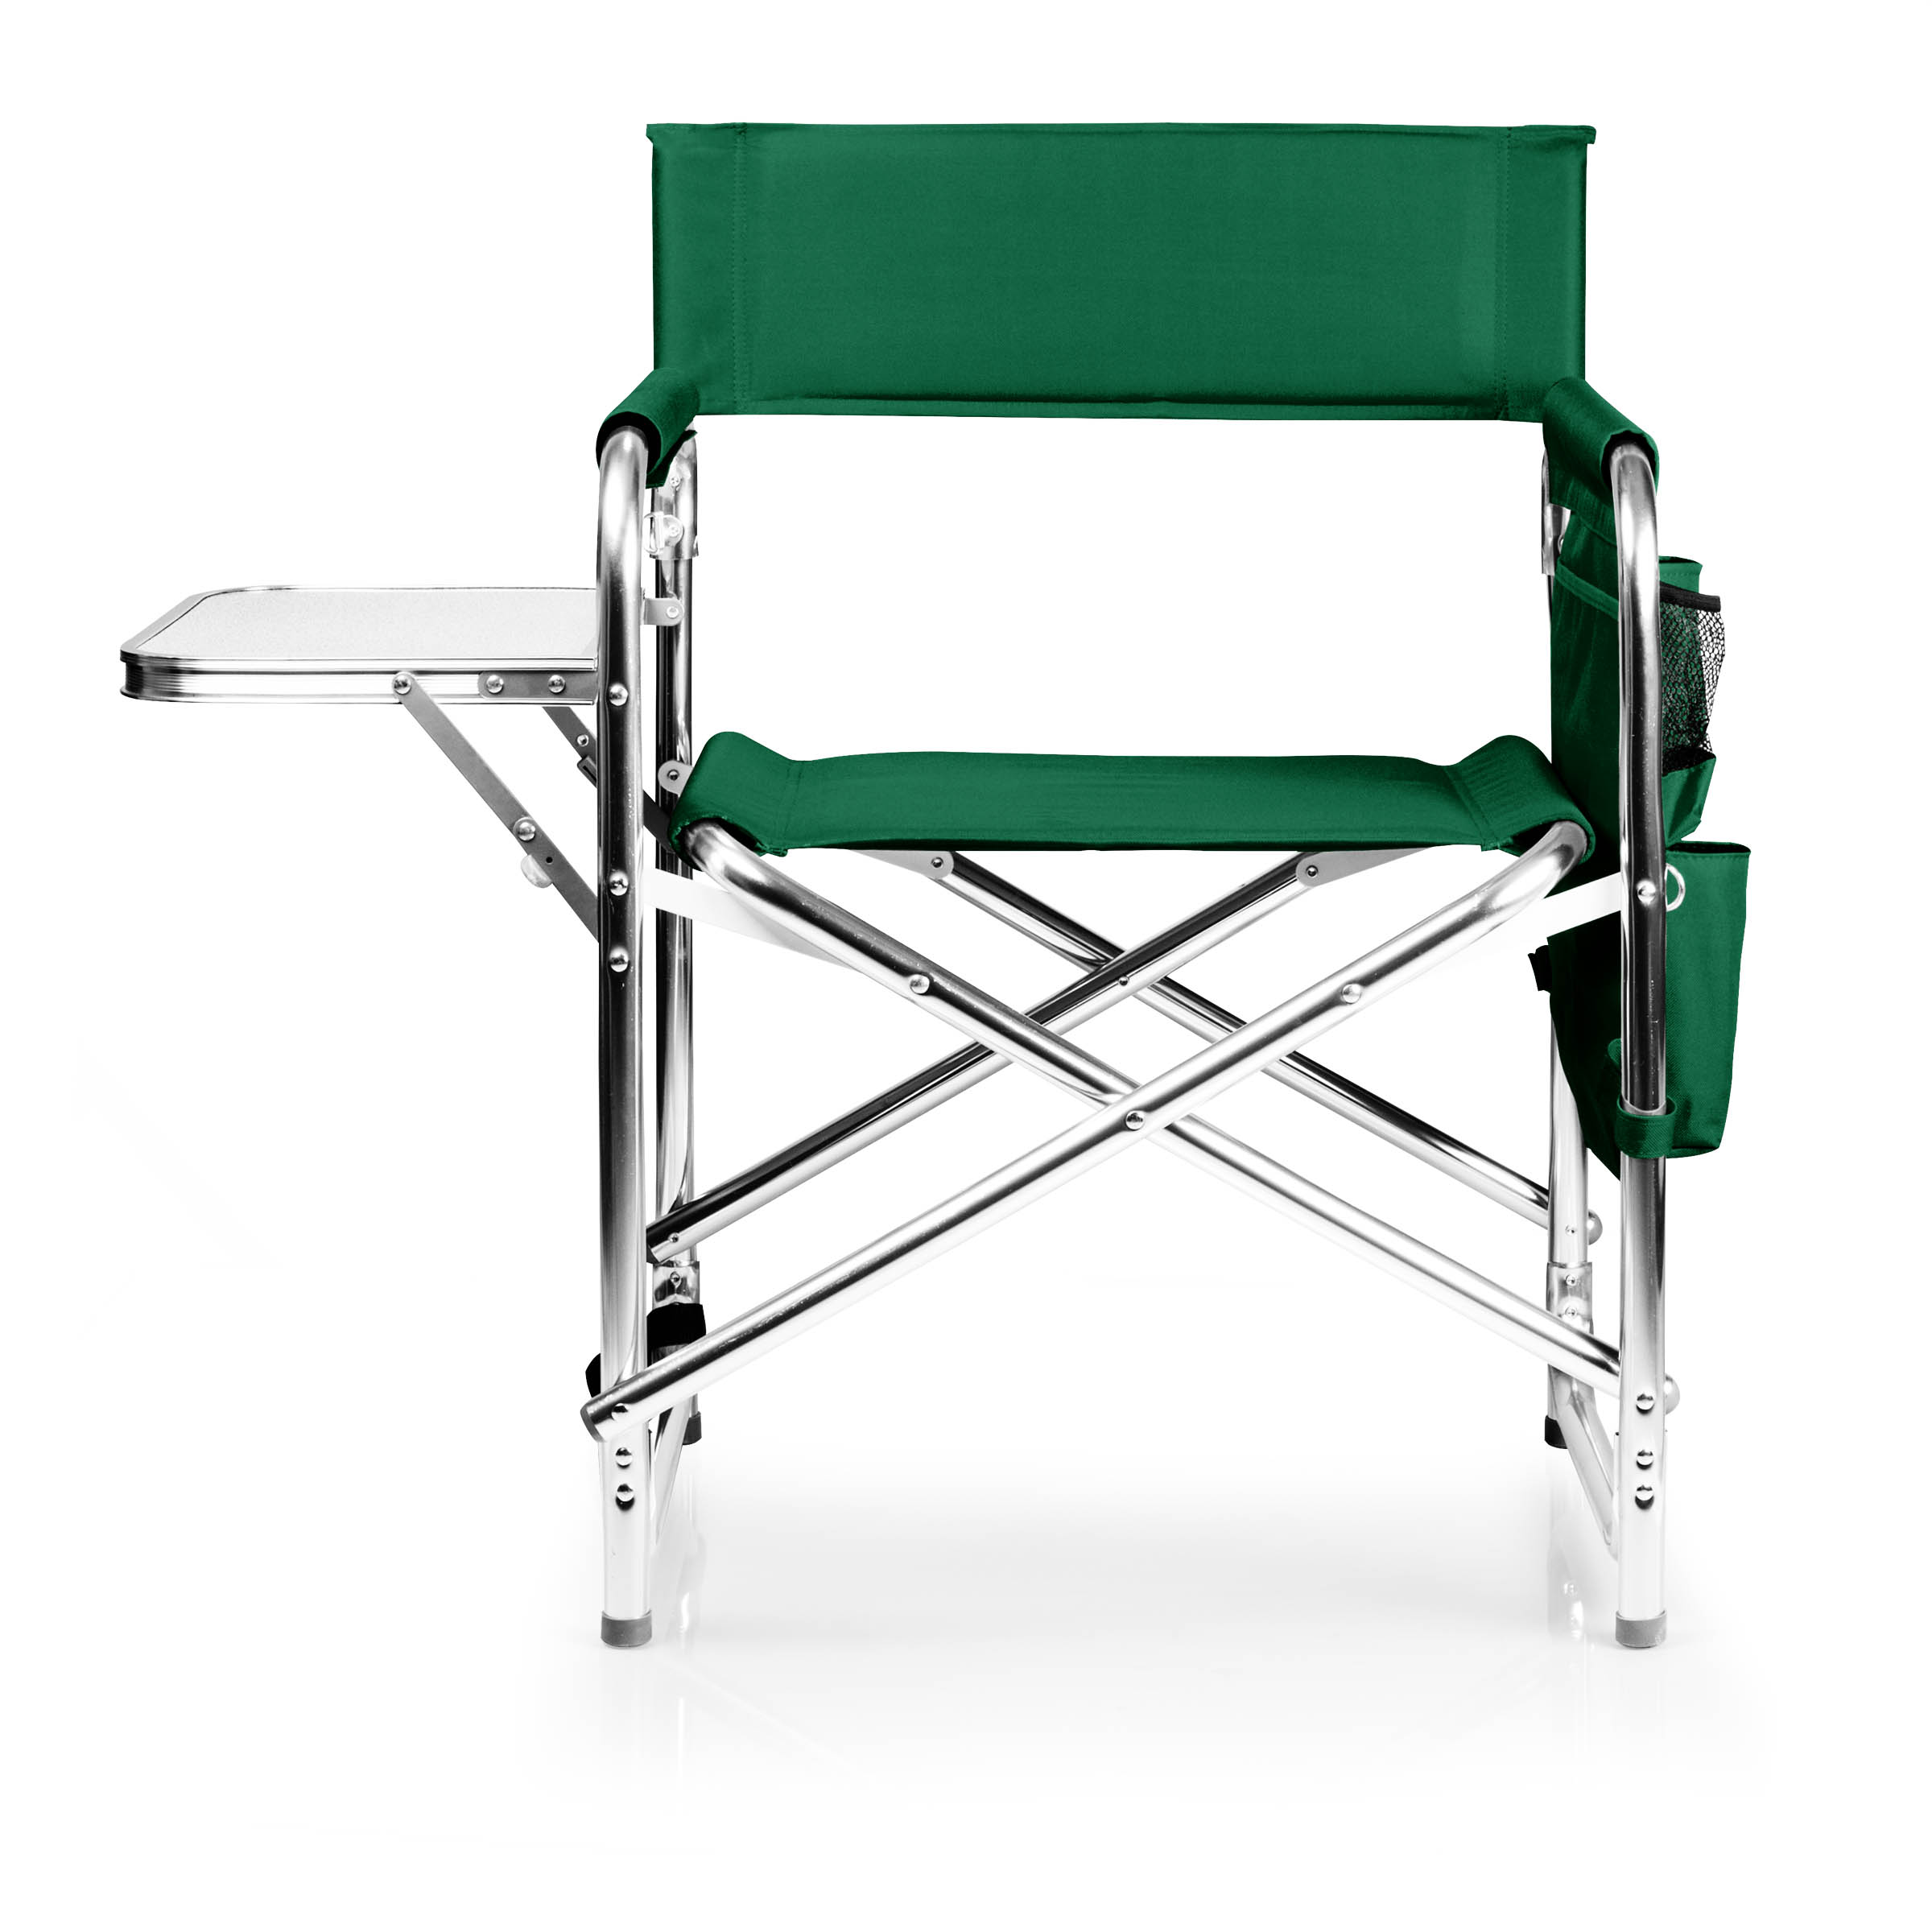 Picnic Chair Sports Chair Picnic Time Family Of Brands